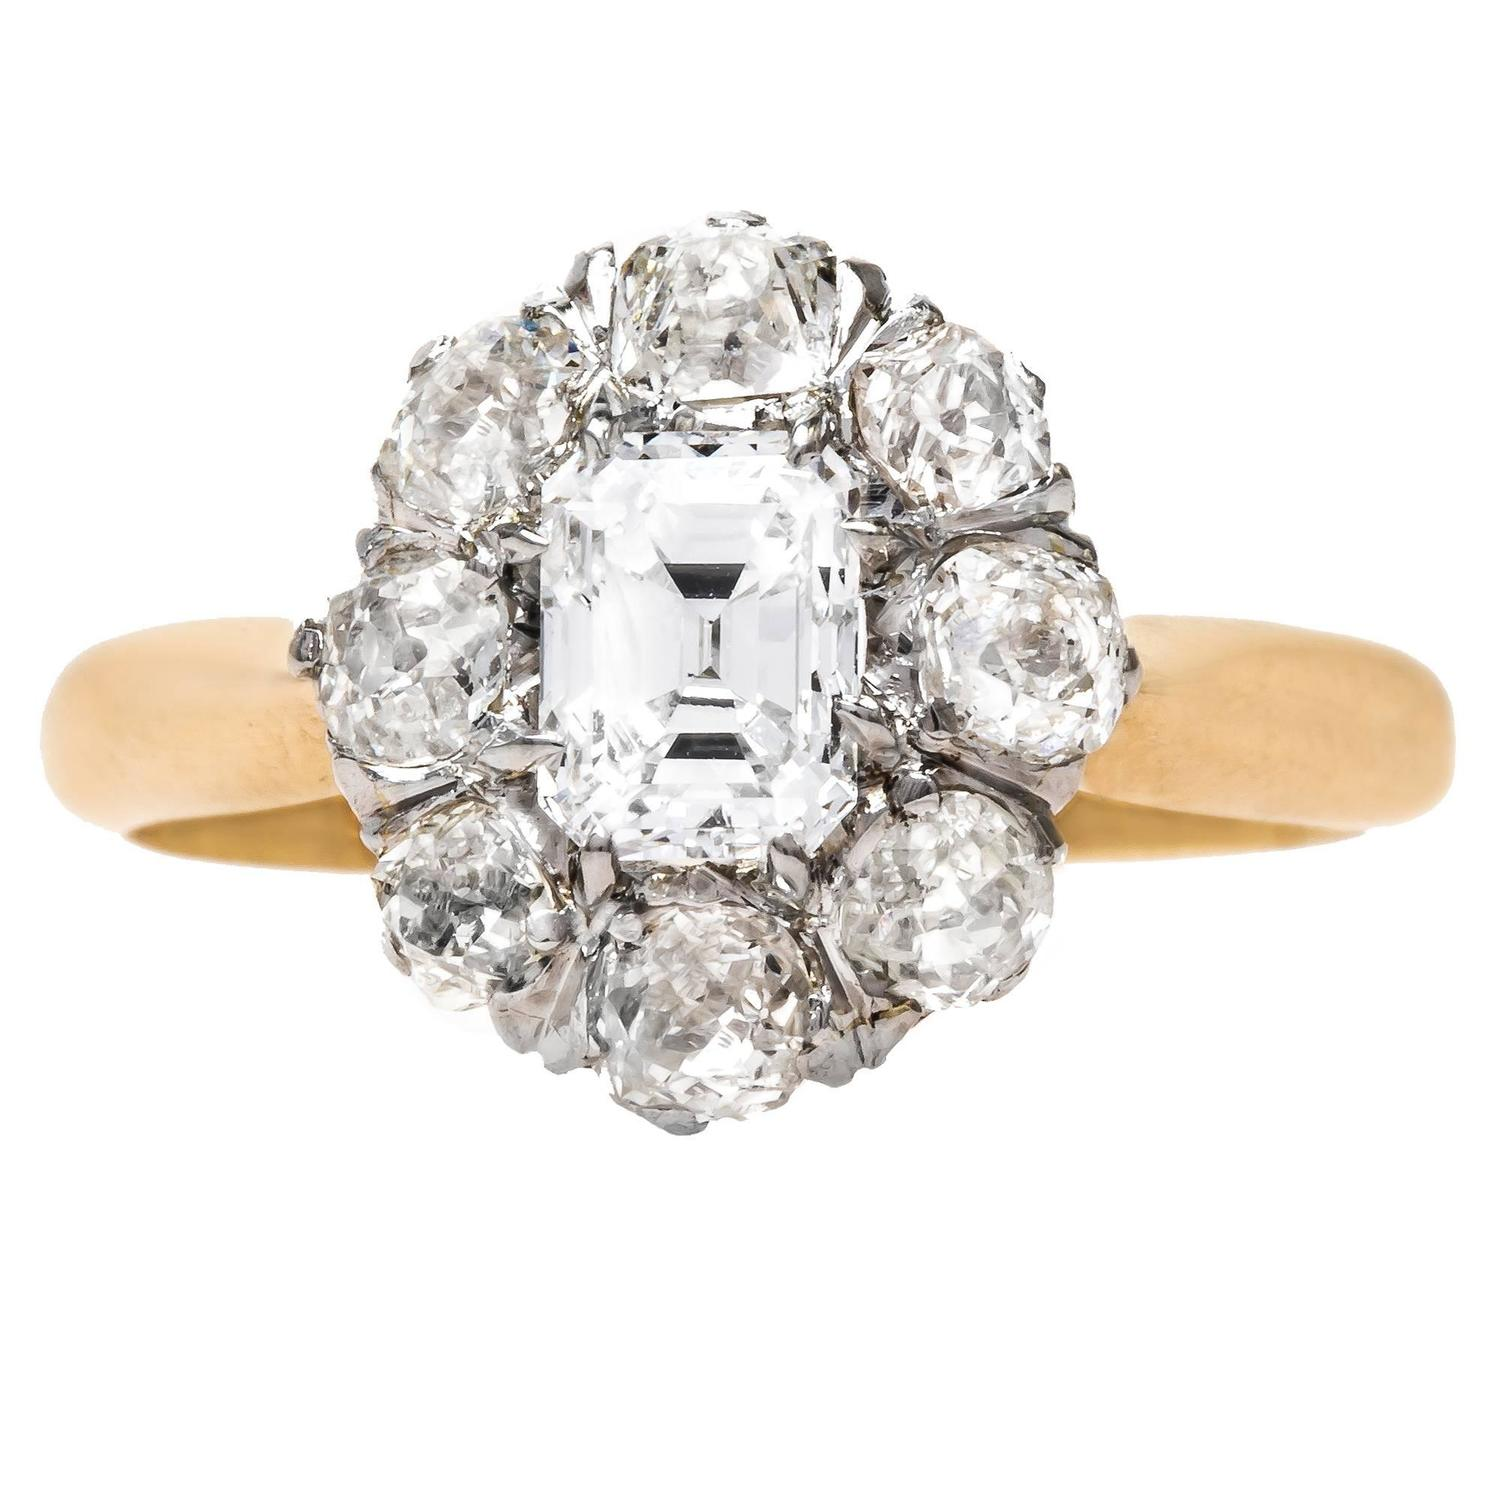 Unique Victorian Cluster Engagement Ring with Emerald Cut Center Diamond at 1